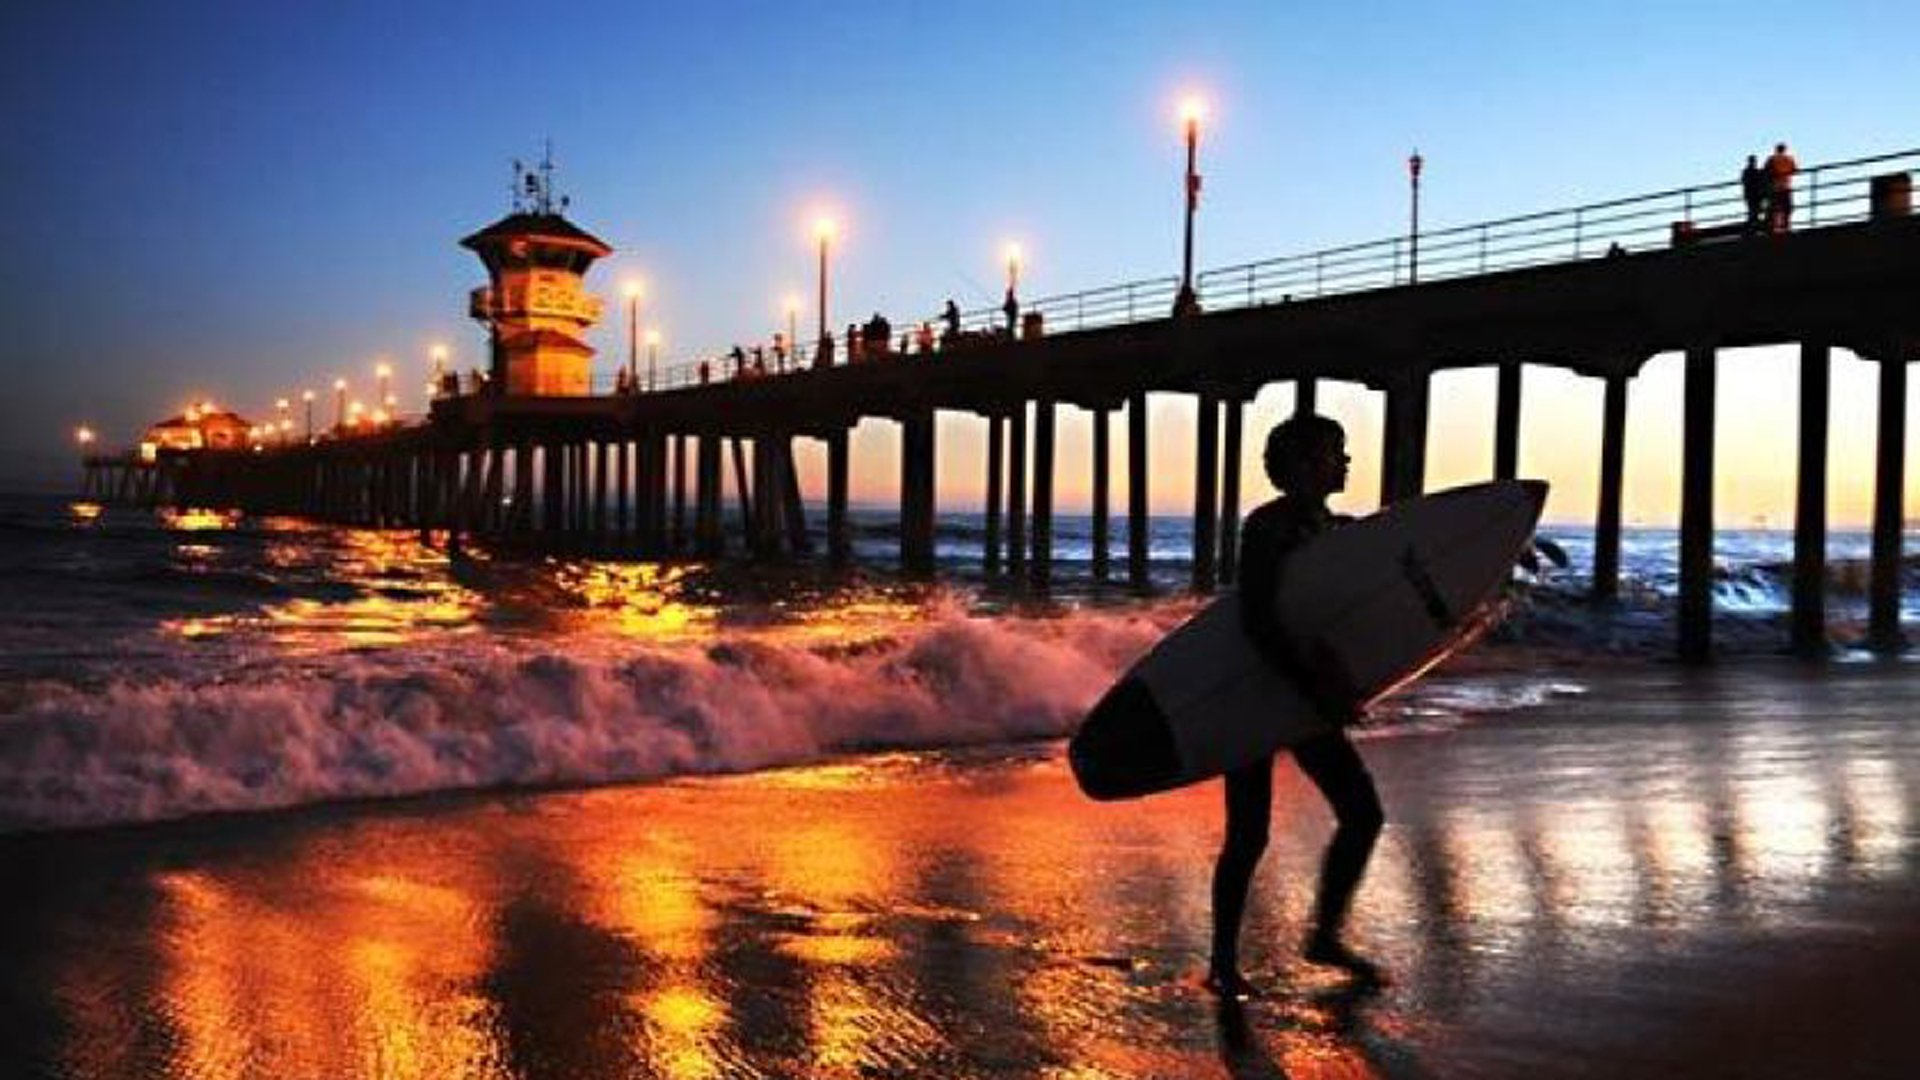 A surfer leaves the water at Huntington Beach Pier. Early Friday, a tsunami alarm sounded across the city, but officials said it was made in error.(Credit: Wally Skalij / Los Angeles Times)